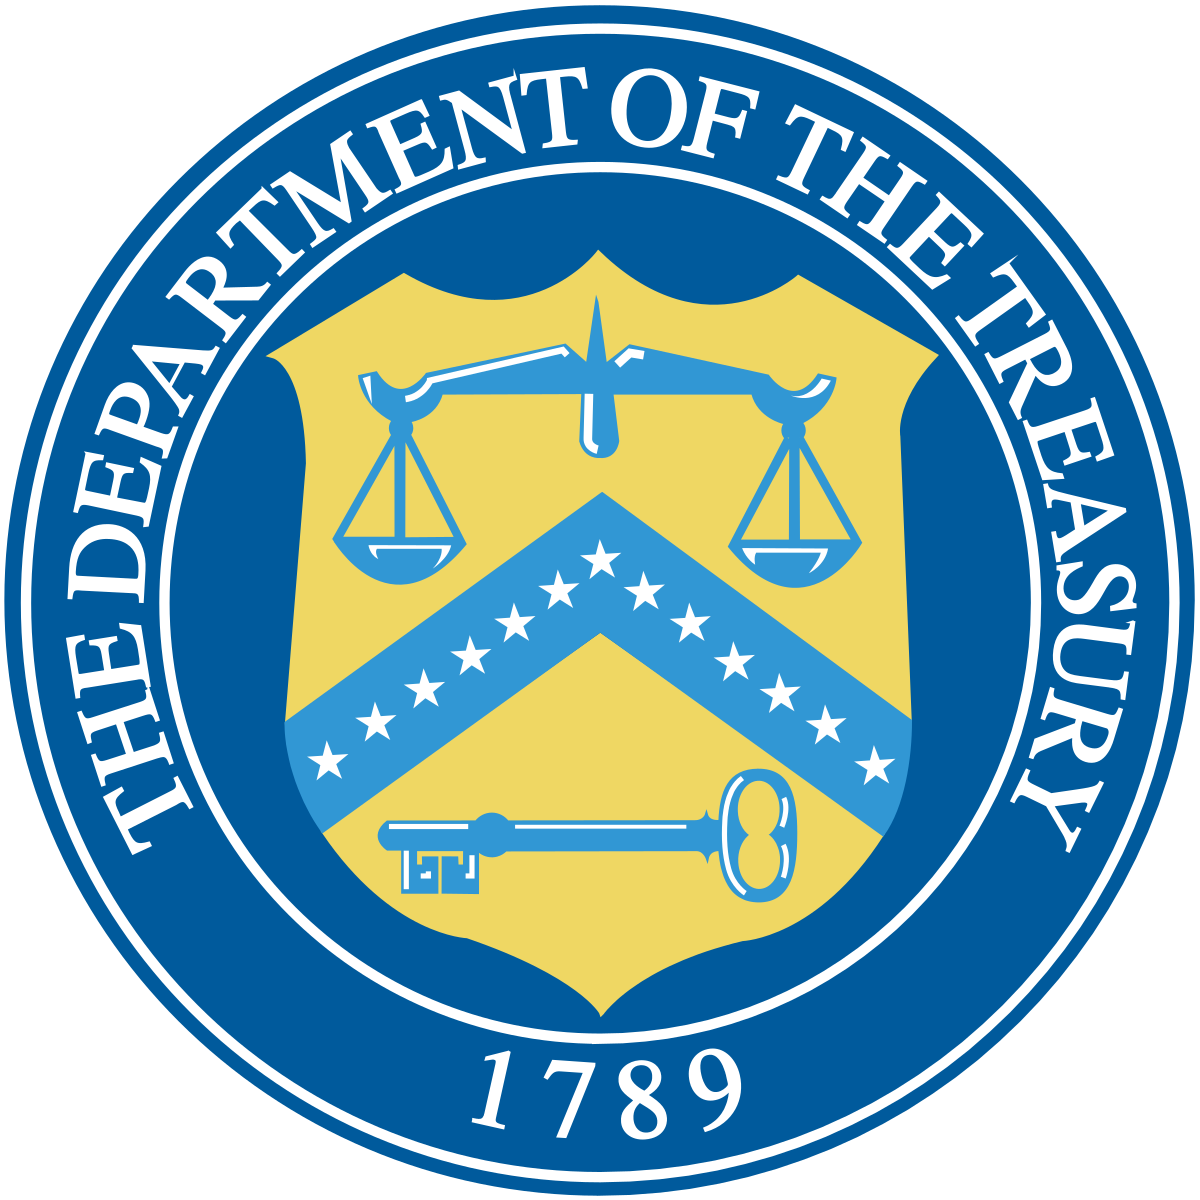 1200px-Seal_of_the_United_States_Department_of_the_Treasury.png